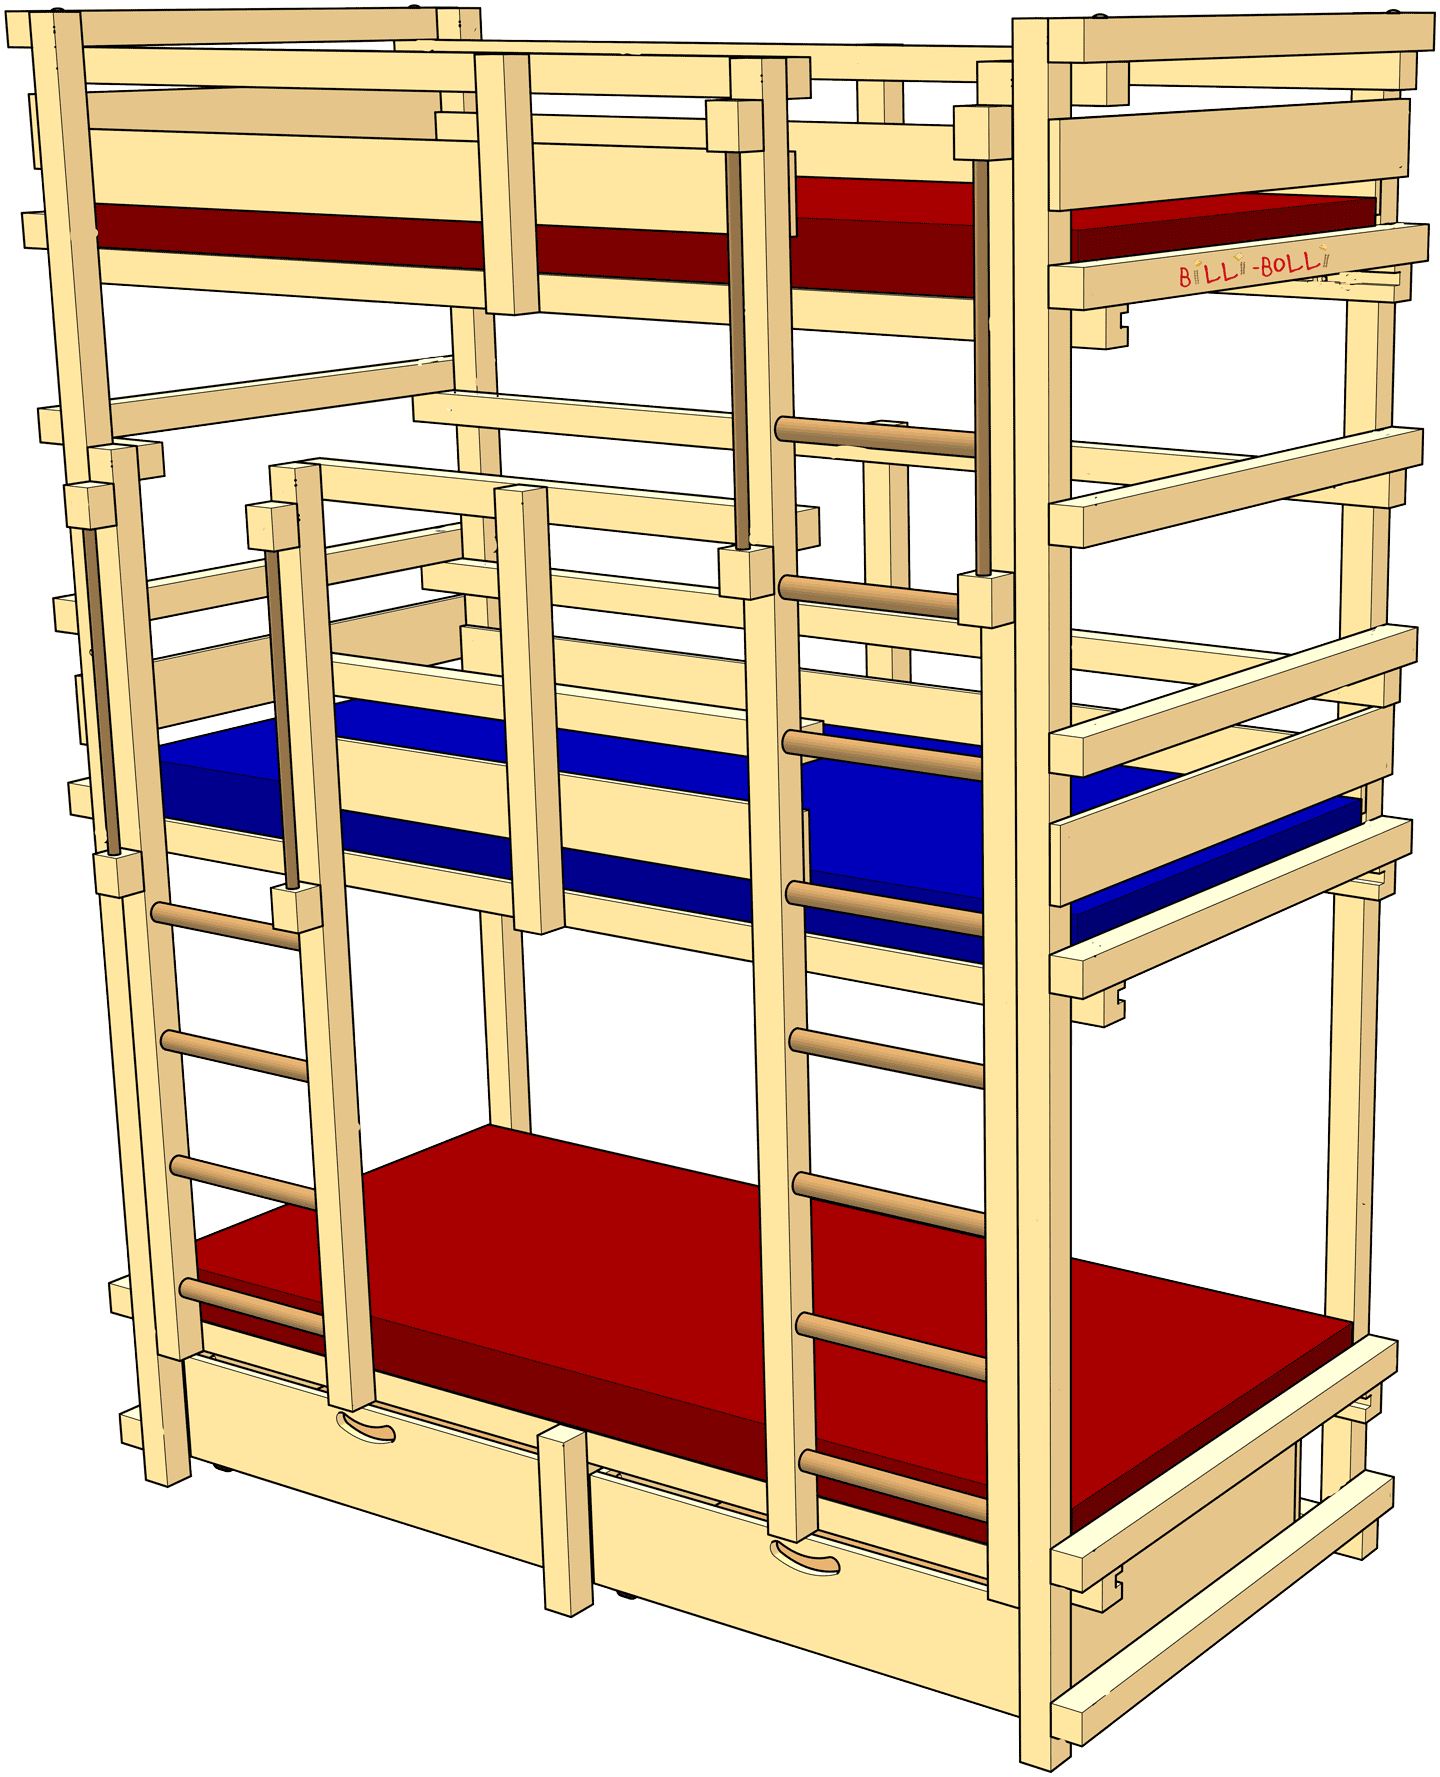 Skyscraper Bunk Bed for three kids (Kids' Beds)